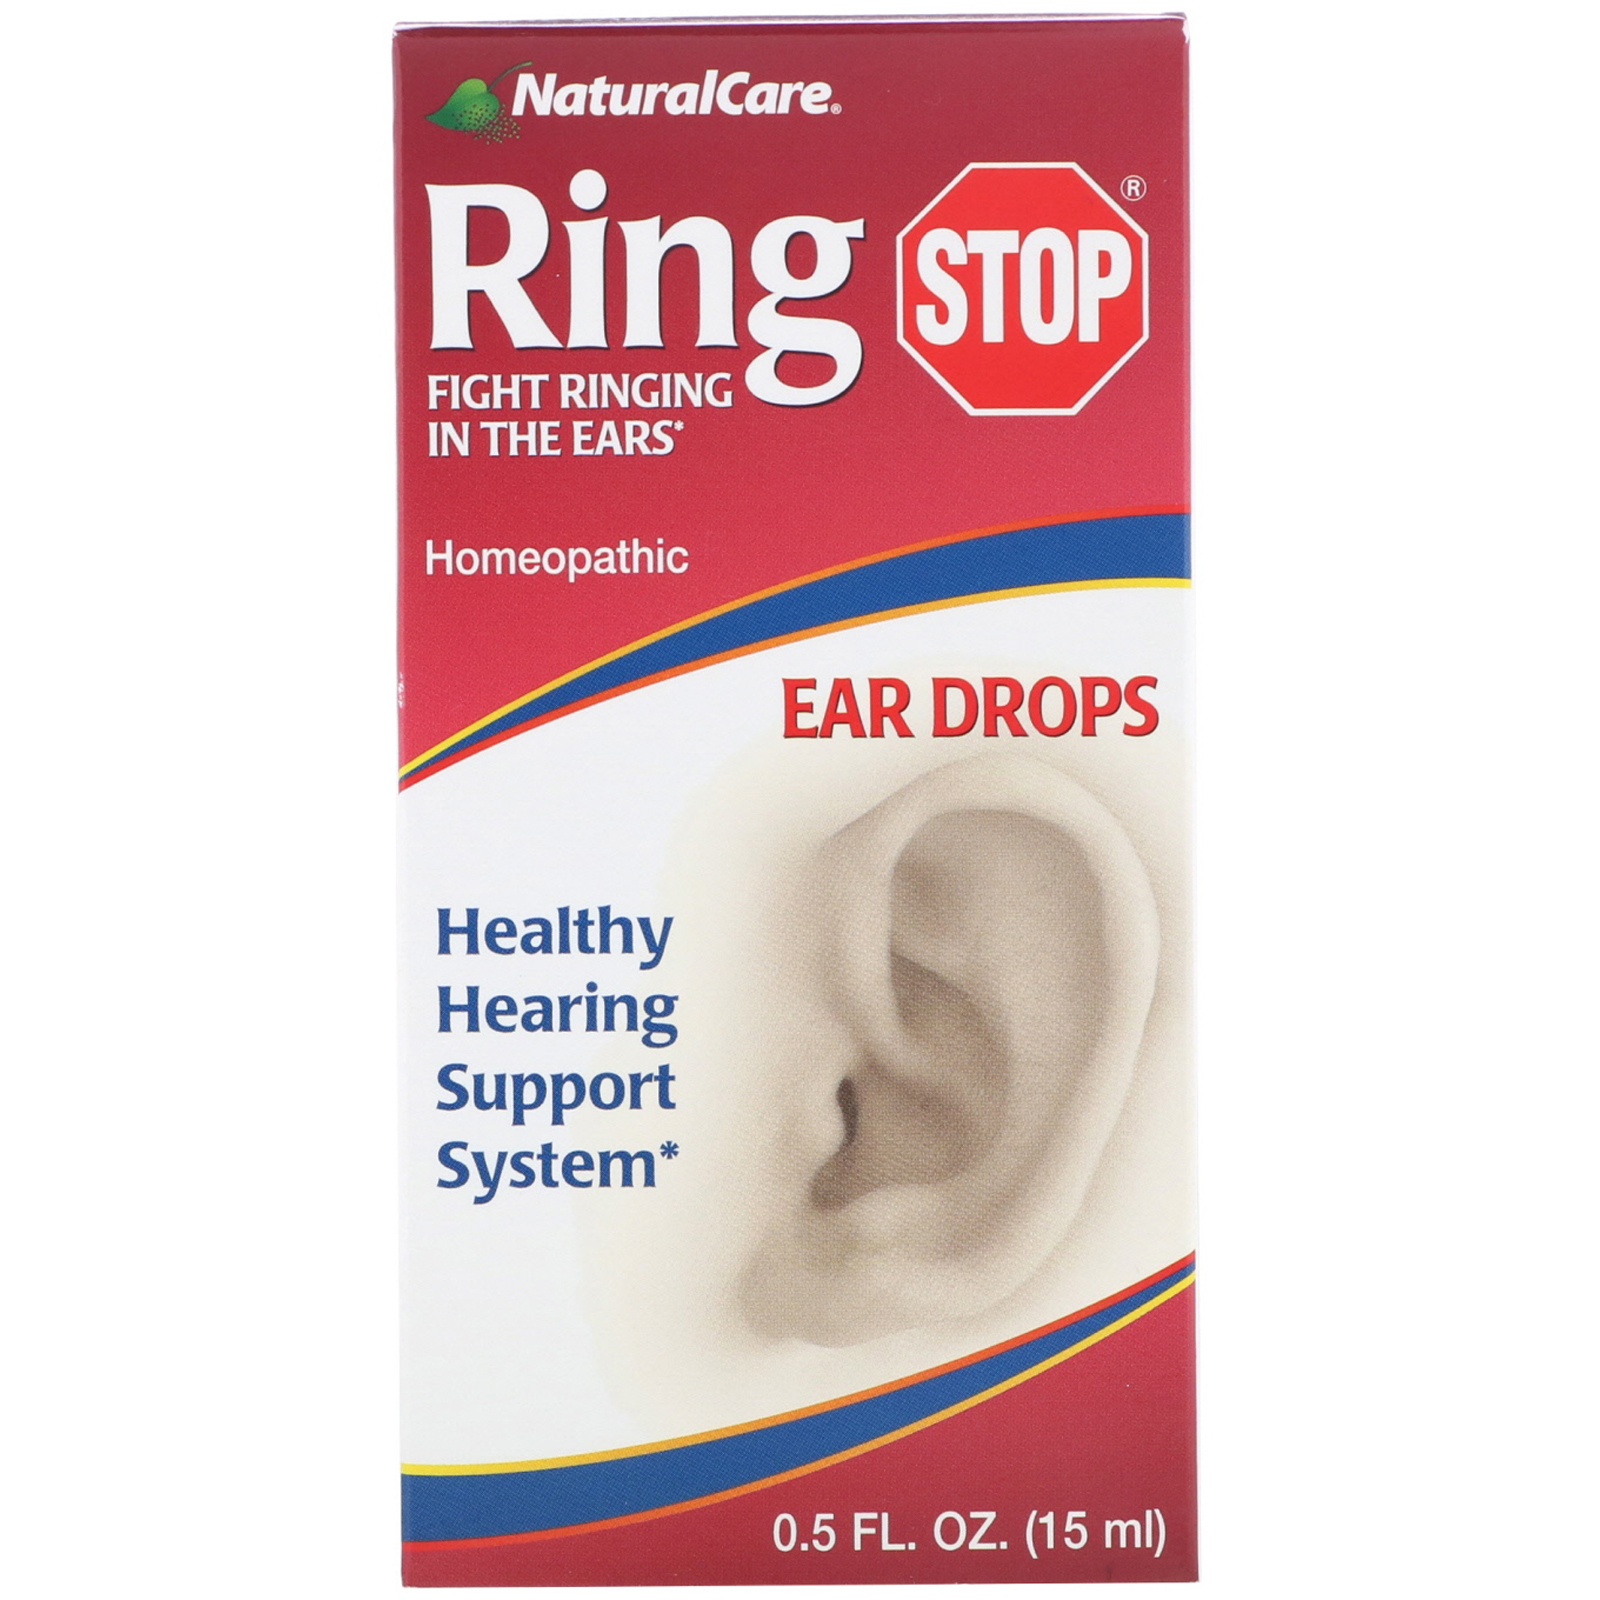 Ring In Kaars.Naturalcare Ring Stop Ear Drops 0 5 Fl Oz 15 Ml Iherb Com